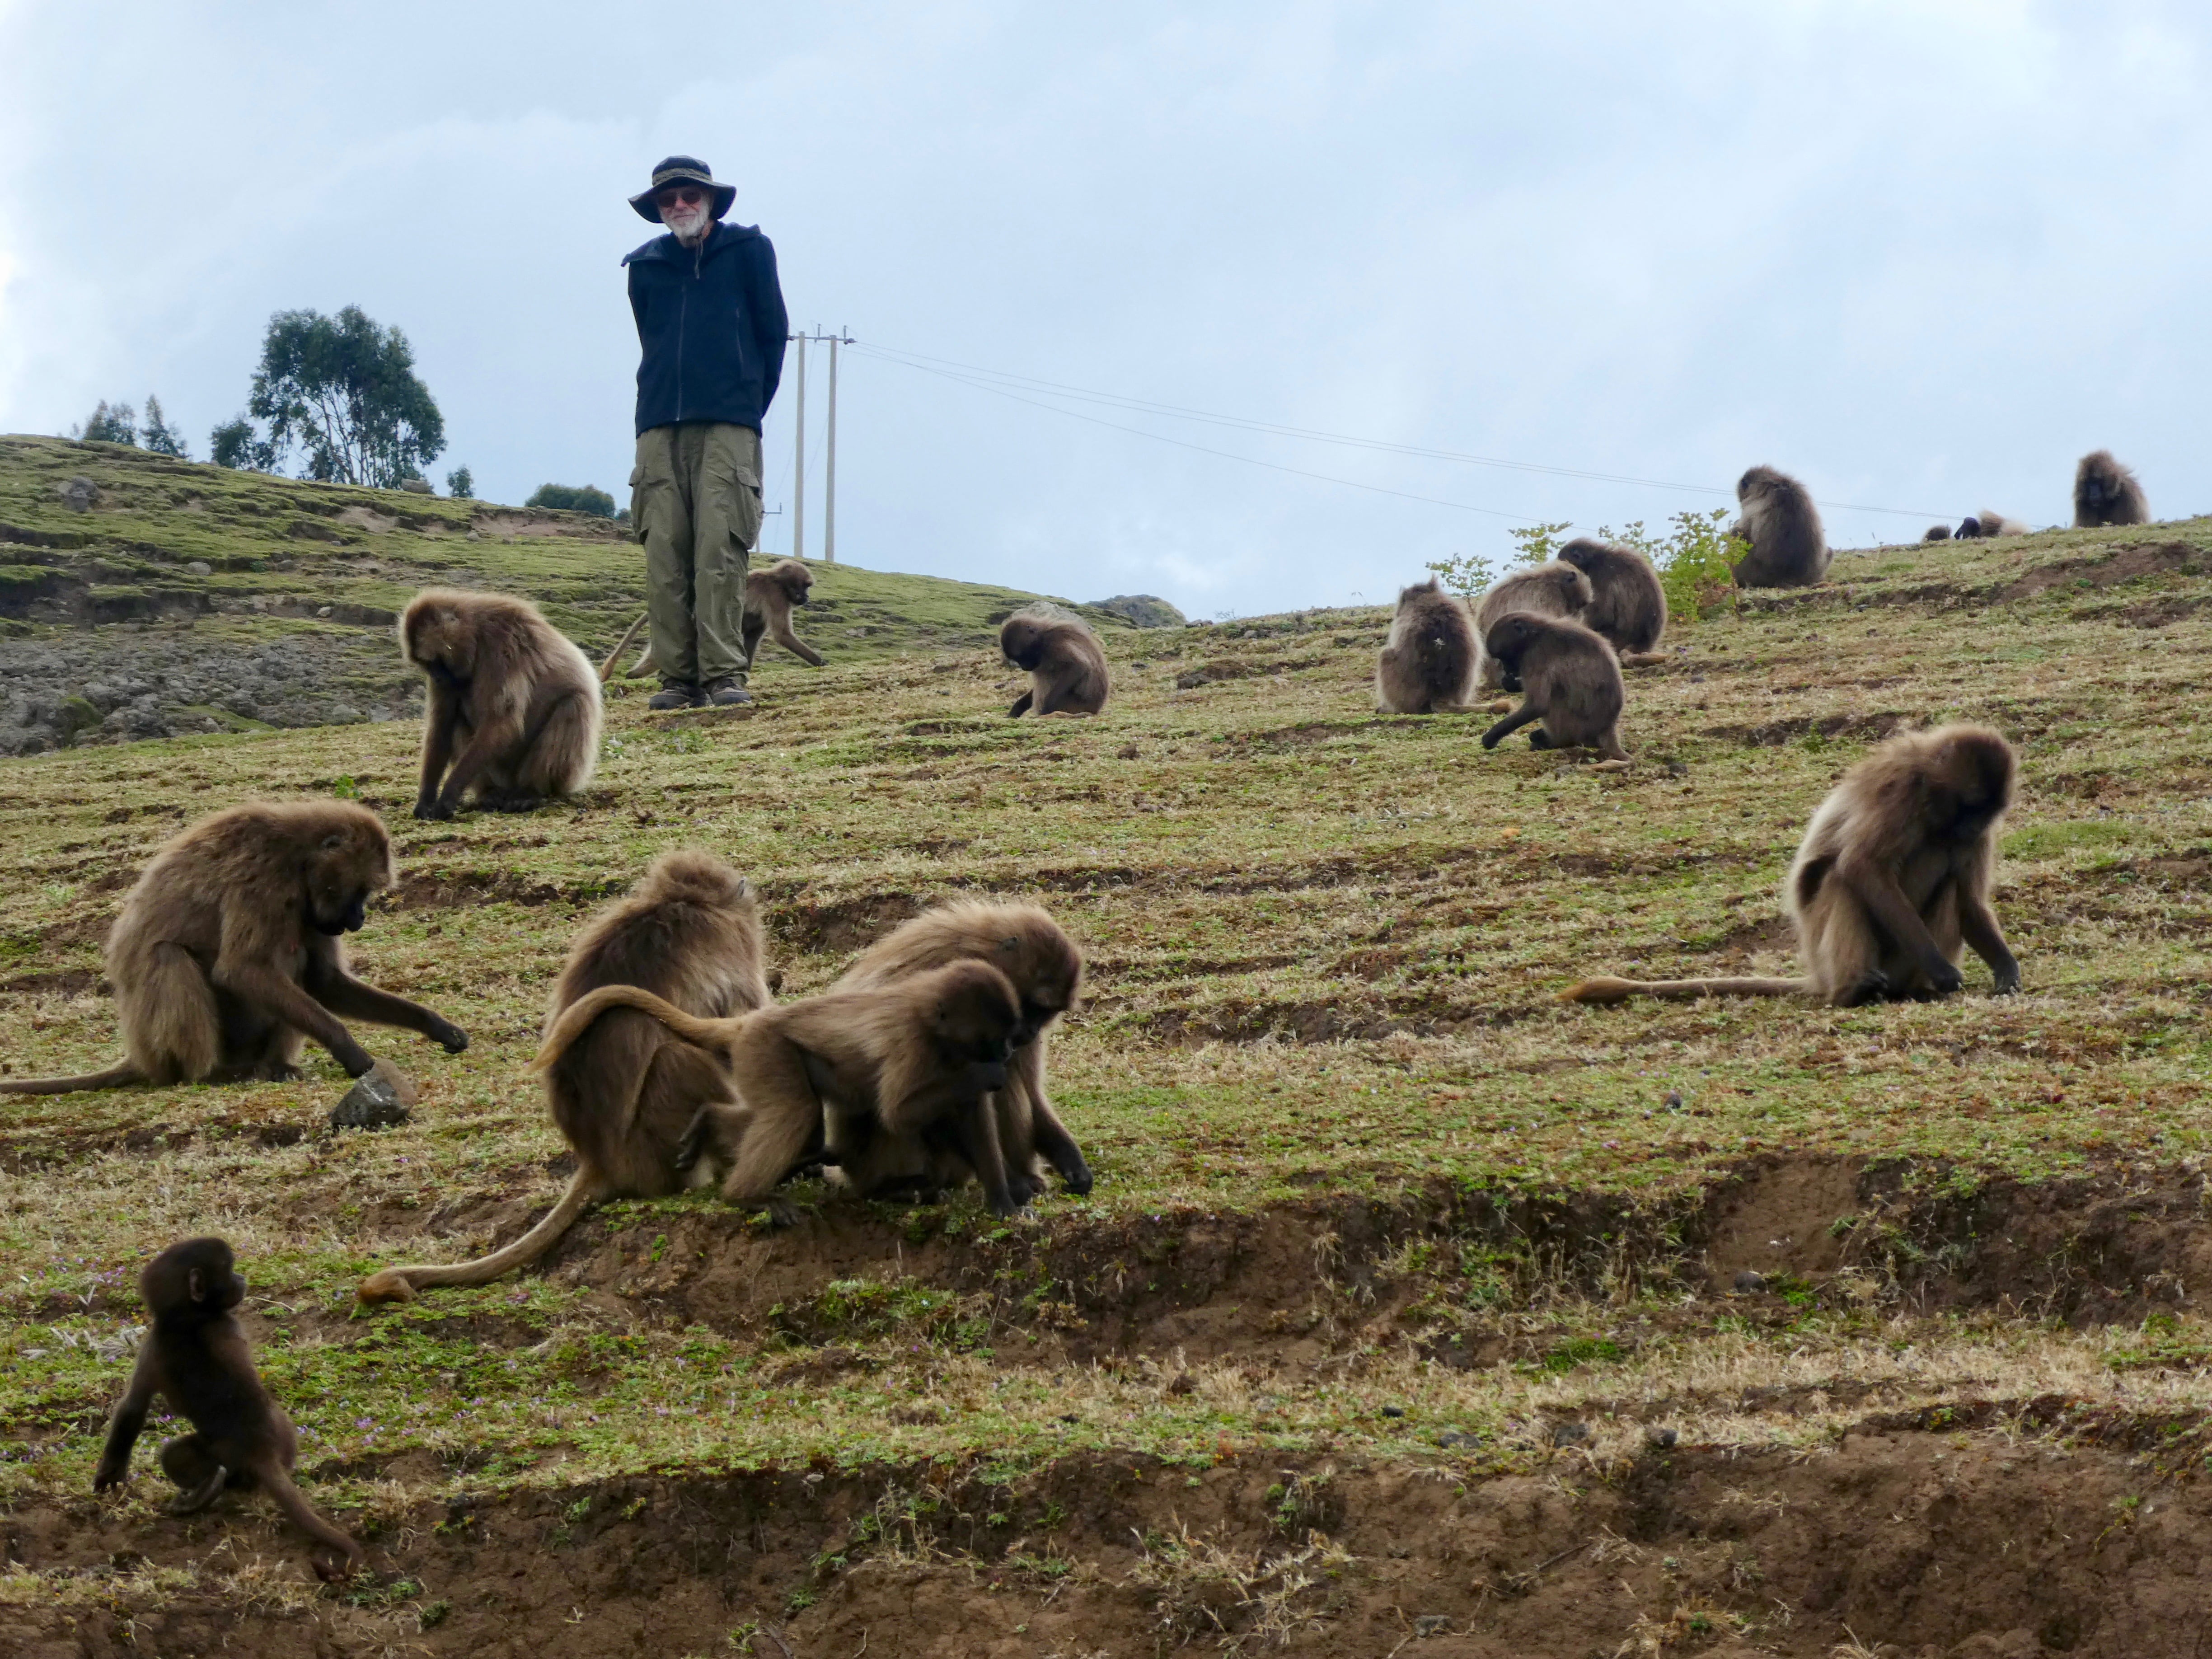 Africa journey 5: Ethiopia, like no other place on Earth